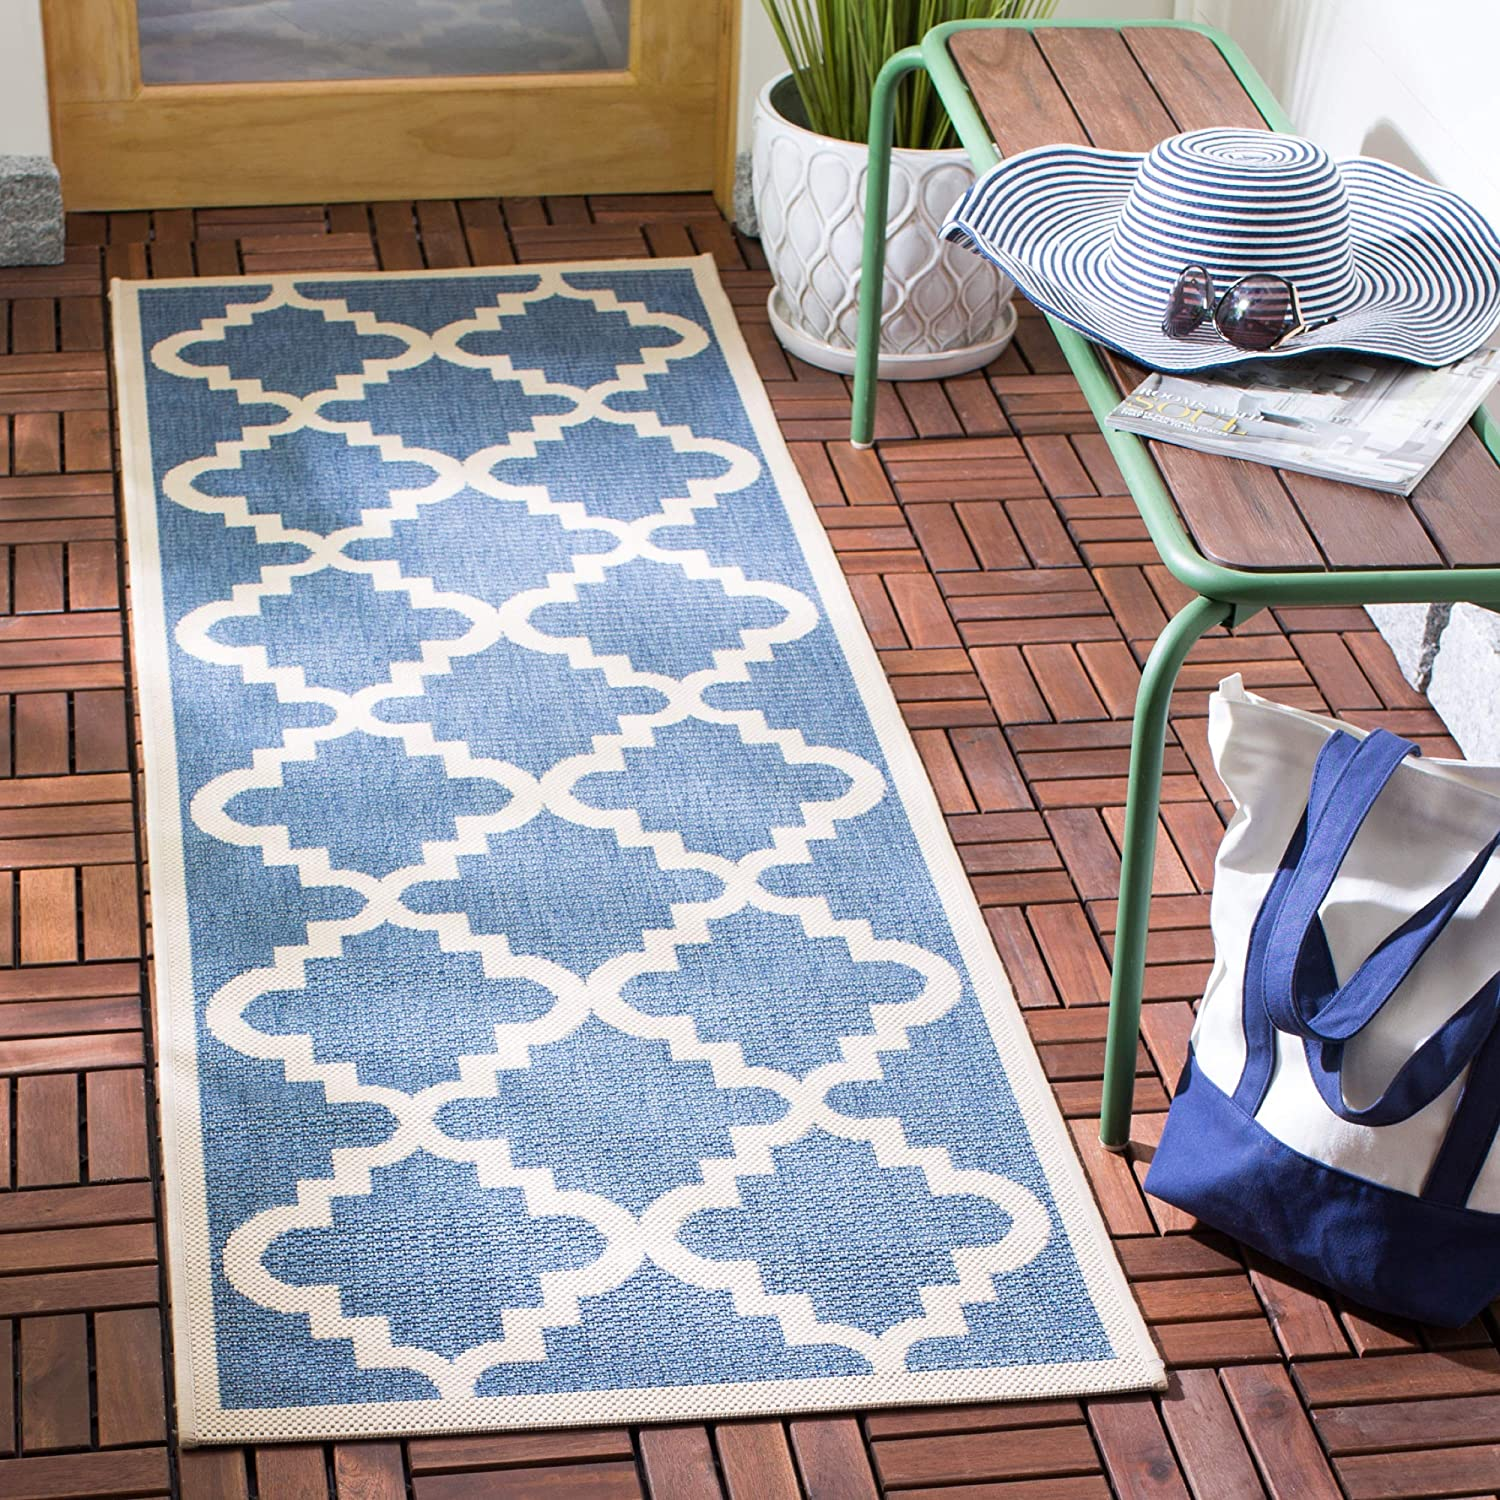 Safavieh Courtyard Collection CY6015-243 bluee and Beige Indoor Outdoor Area Rug, 2 Feet by 3 Feet 7-Inch